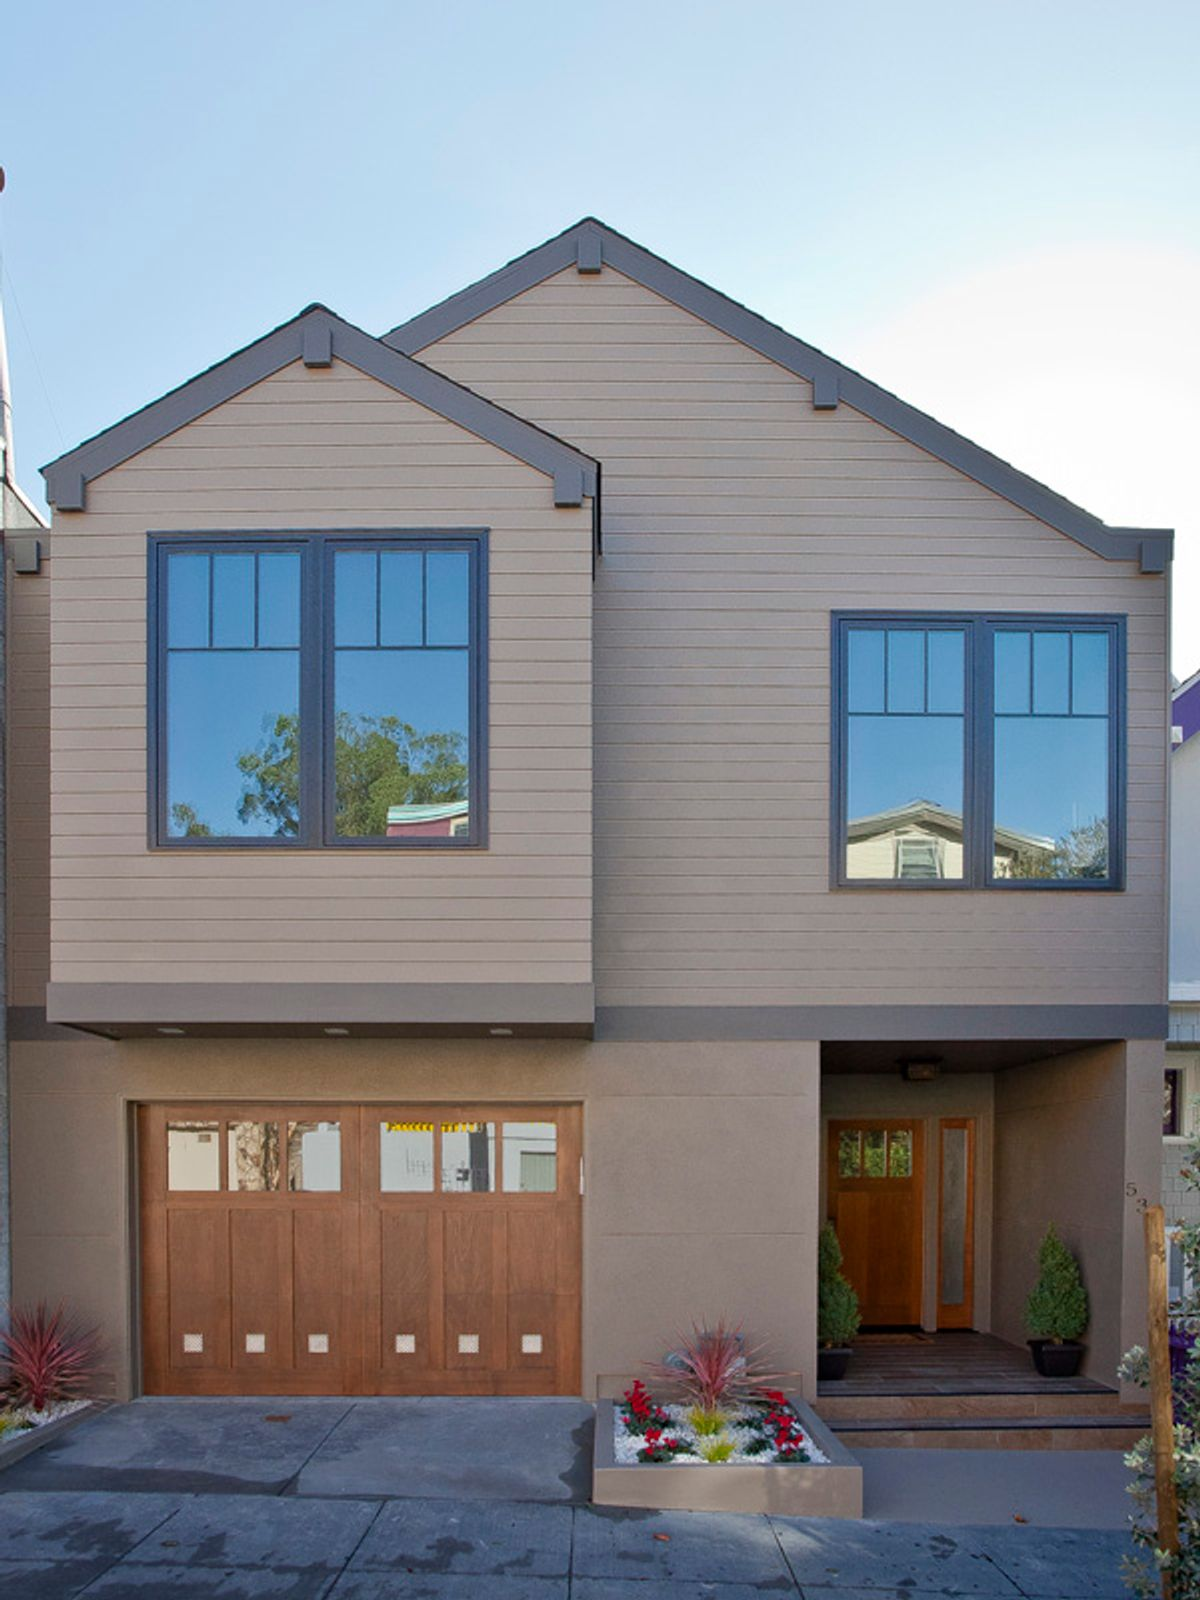 533 Laidley New Construction Views, San Francisco CA Single Family Home - San Francisco Real Estate